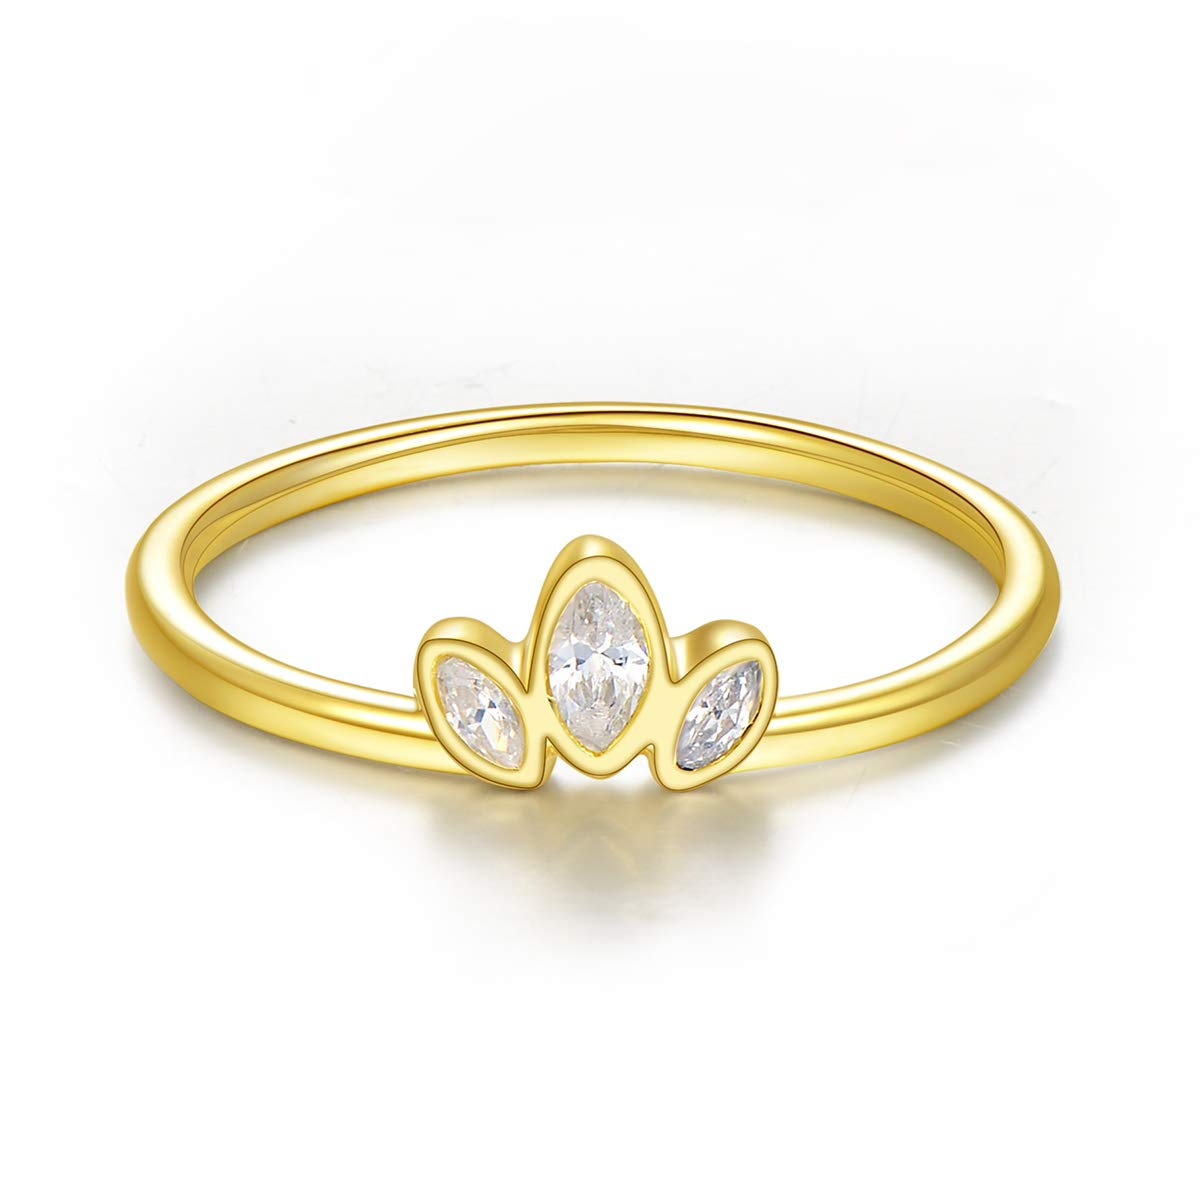 14k Gold Plated Sterling Silver Dainty Minimalist Ring Wedding Band for Women CherLove Engagement Stackable Ring